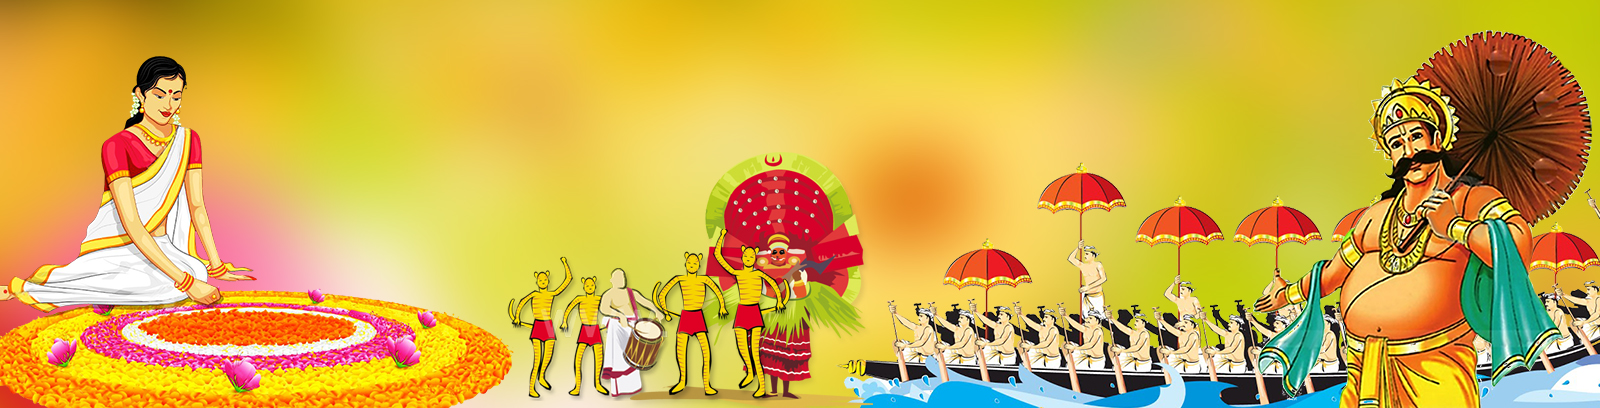 Major festival of Kerala - Onam by Leisure Tours - the best Kerala Tour Operator